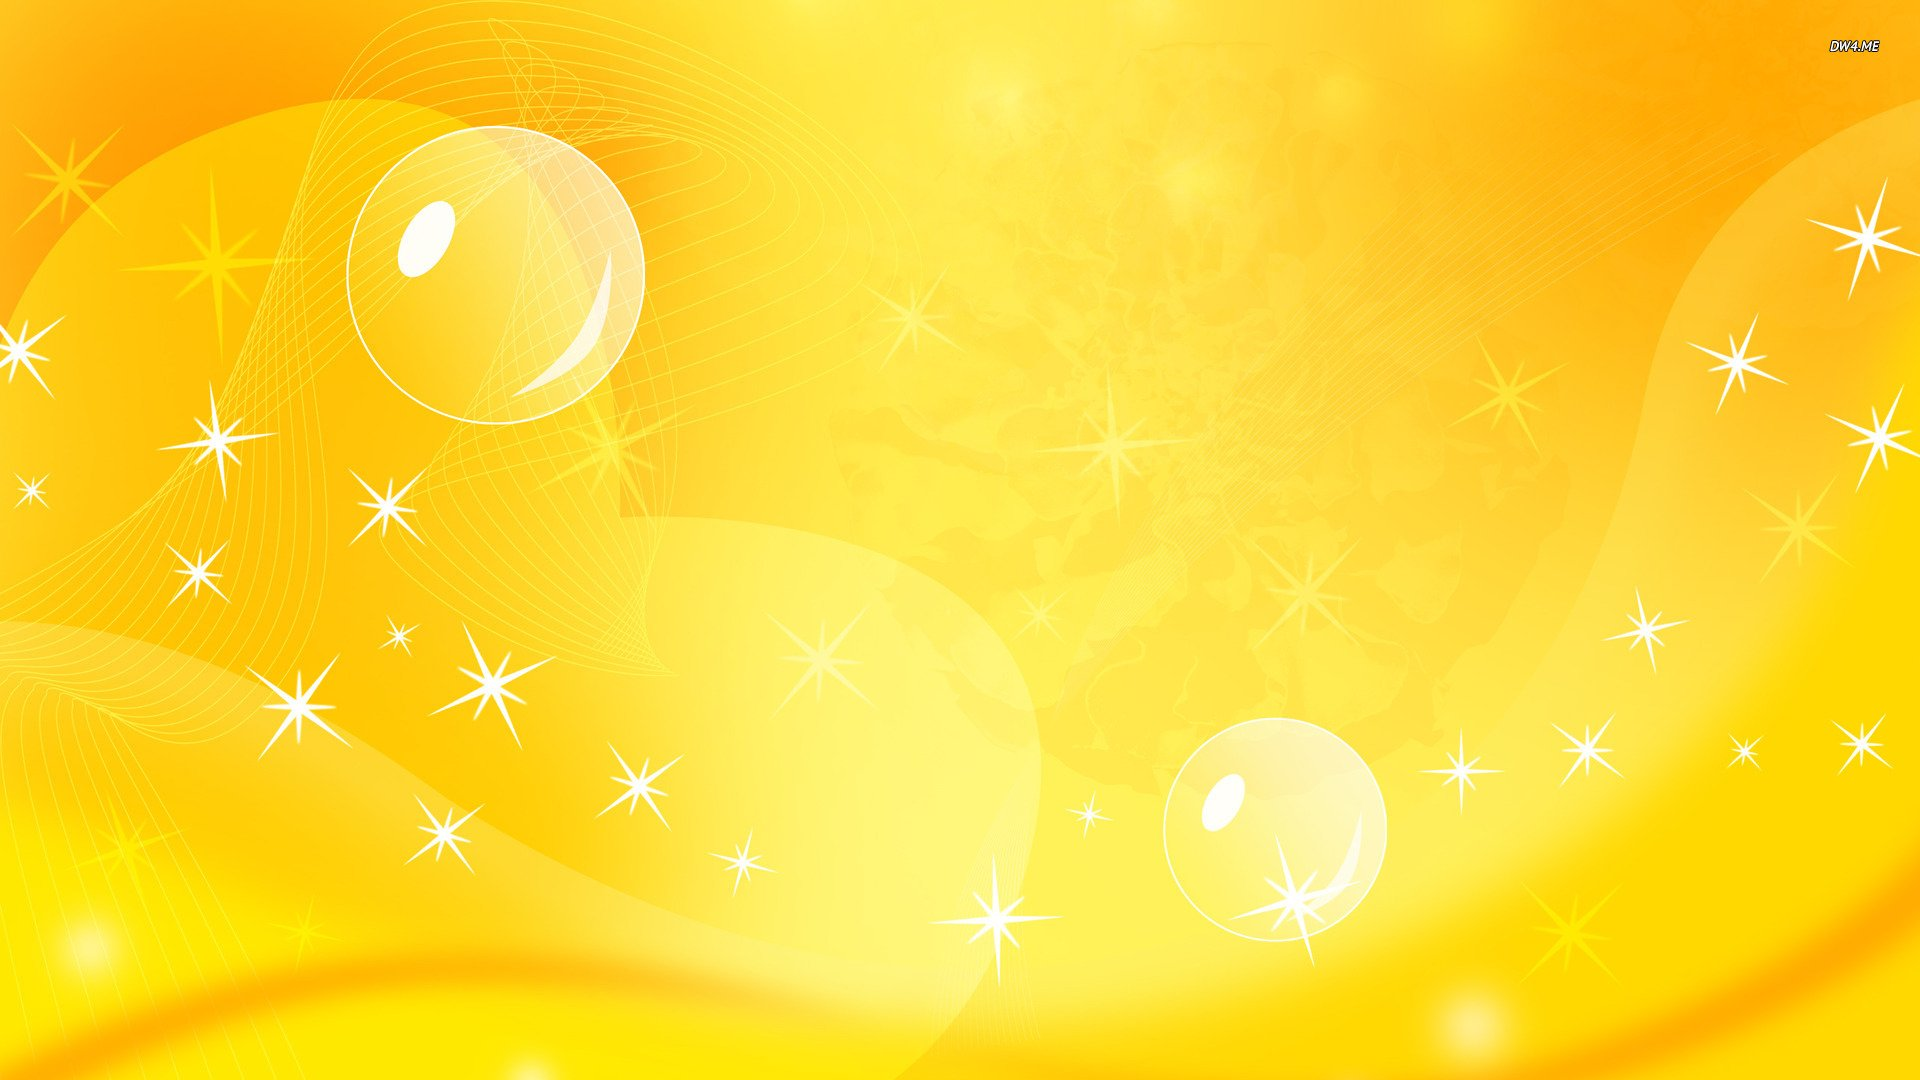 27+ Yellow Background Wallpaper Hd Images